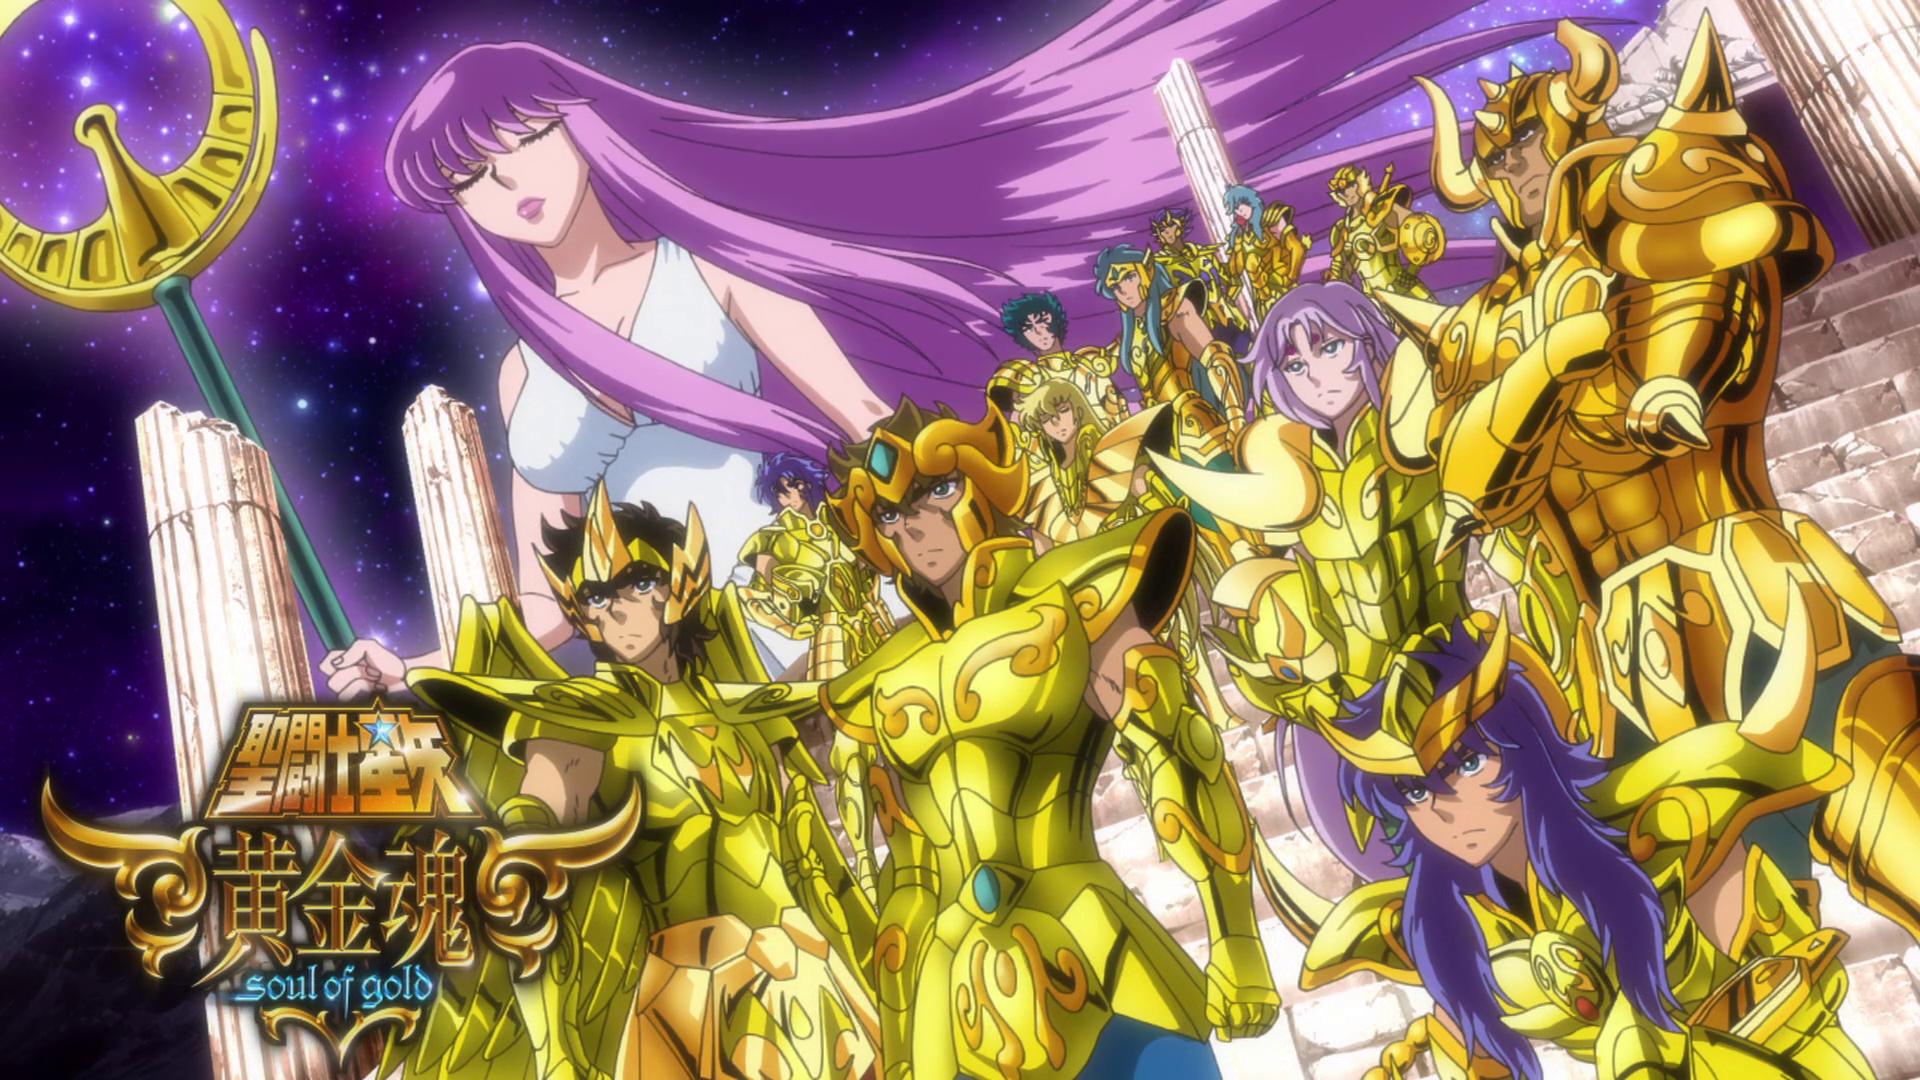 Saint Seiya Wallpapers Anime Hq Saint Seiya Pictures 4k